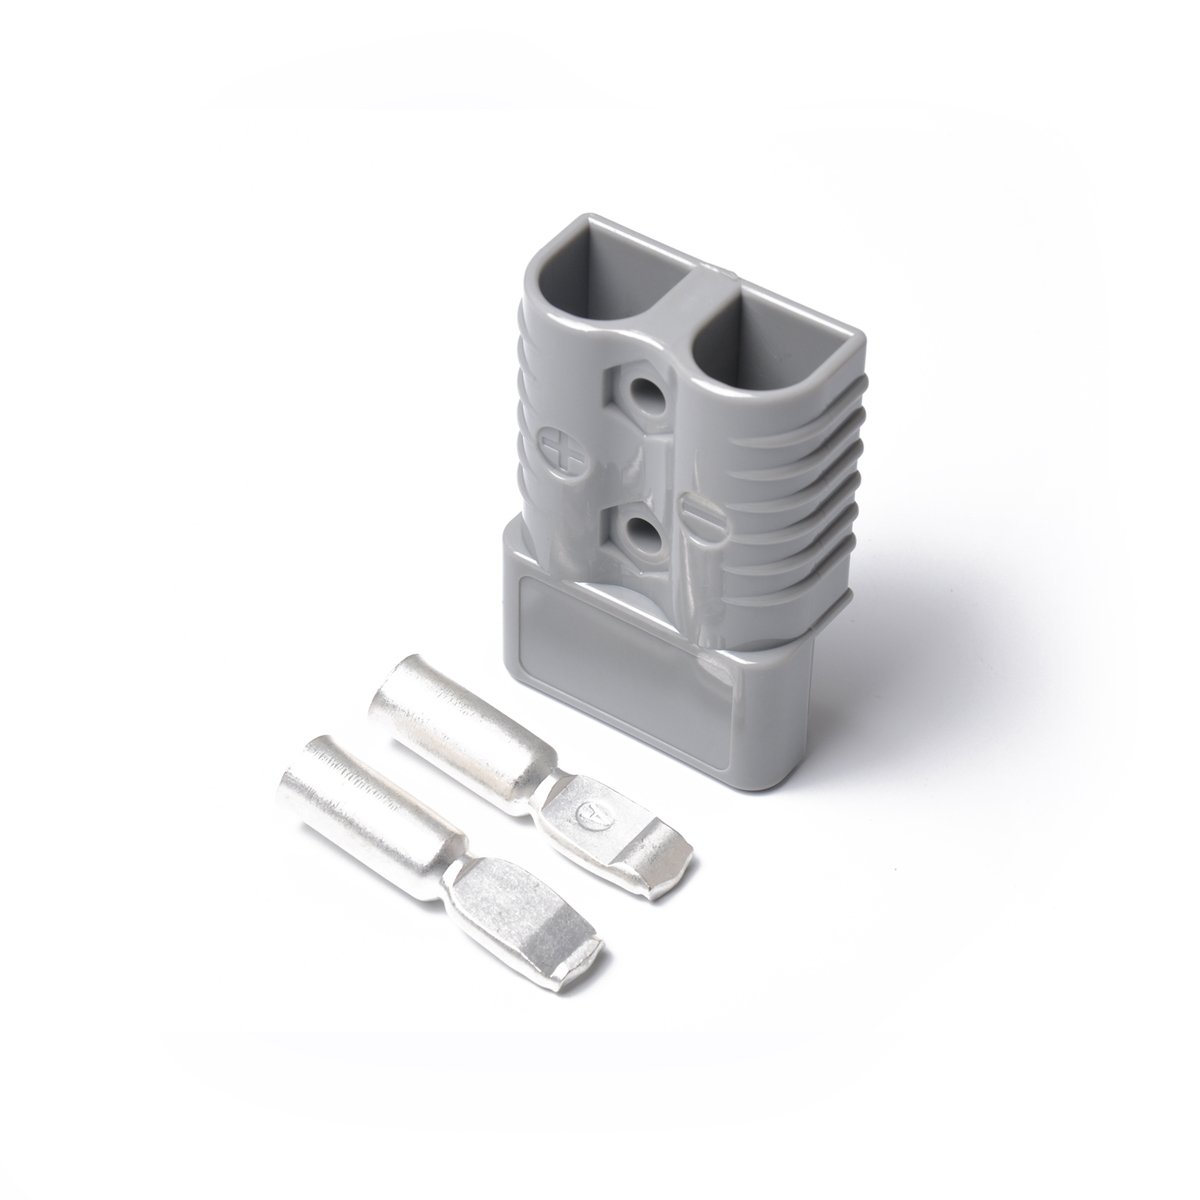 Gray WINOMO Trailer 175A 600V Anderson Style Plug Exterior Connector with 2 Contacts